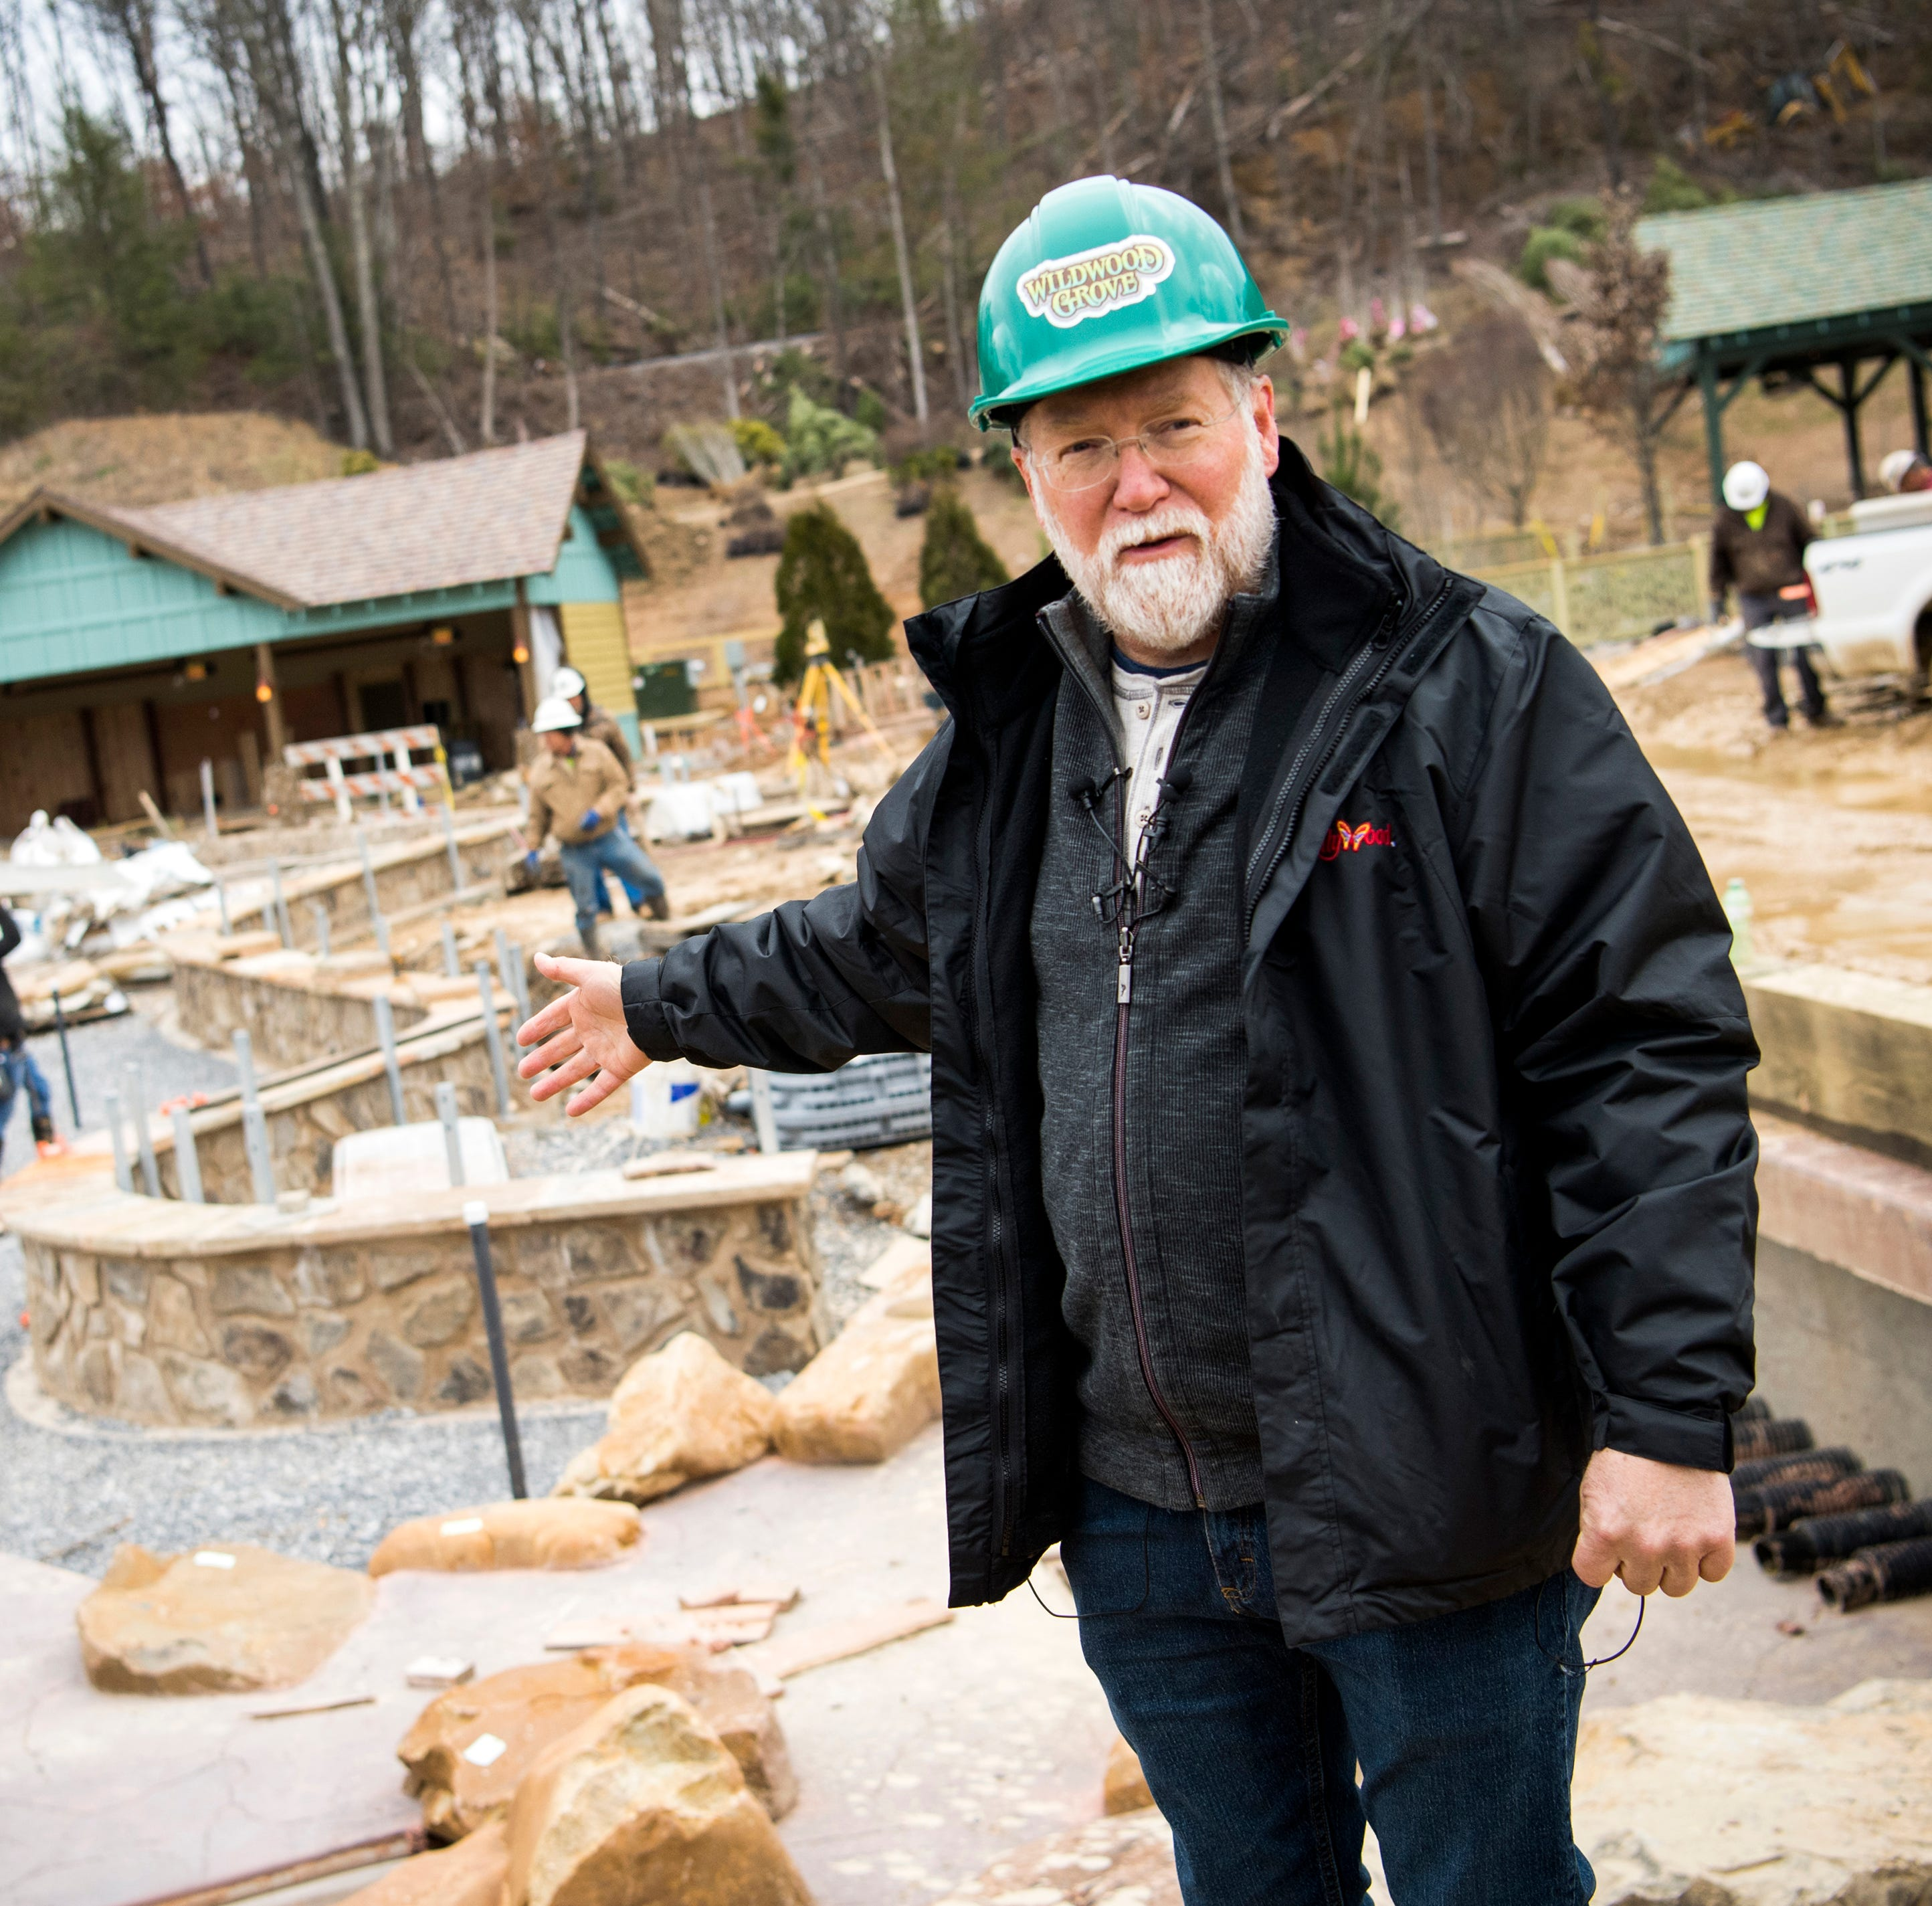 Take a tour of Dollywood's new Wildwood Grove, set to open in May